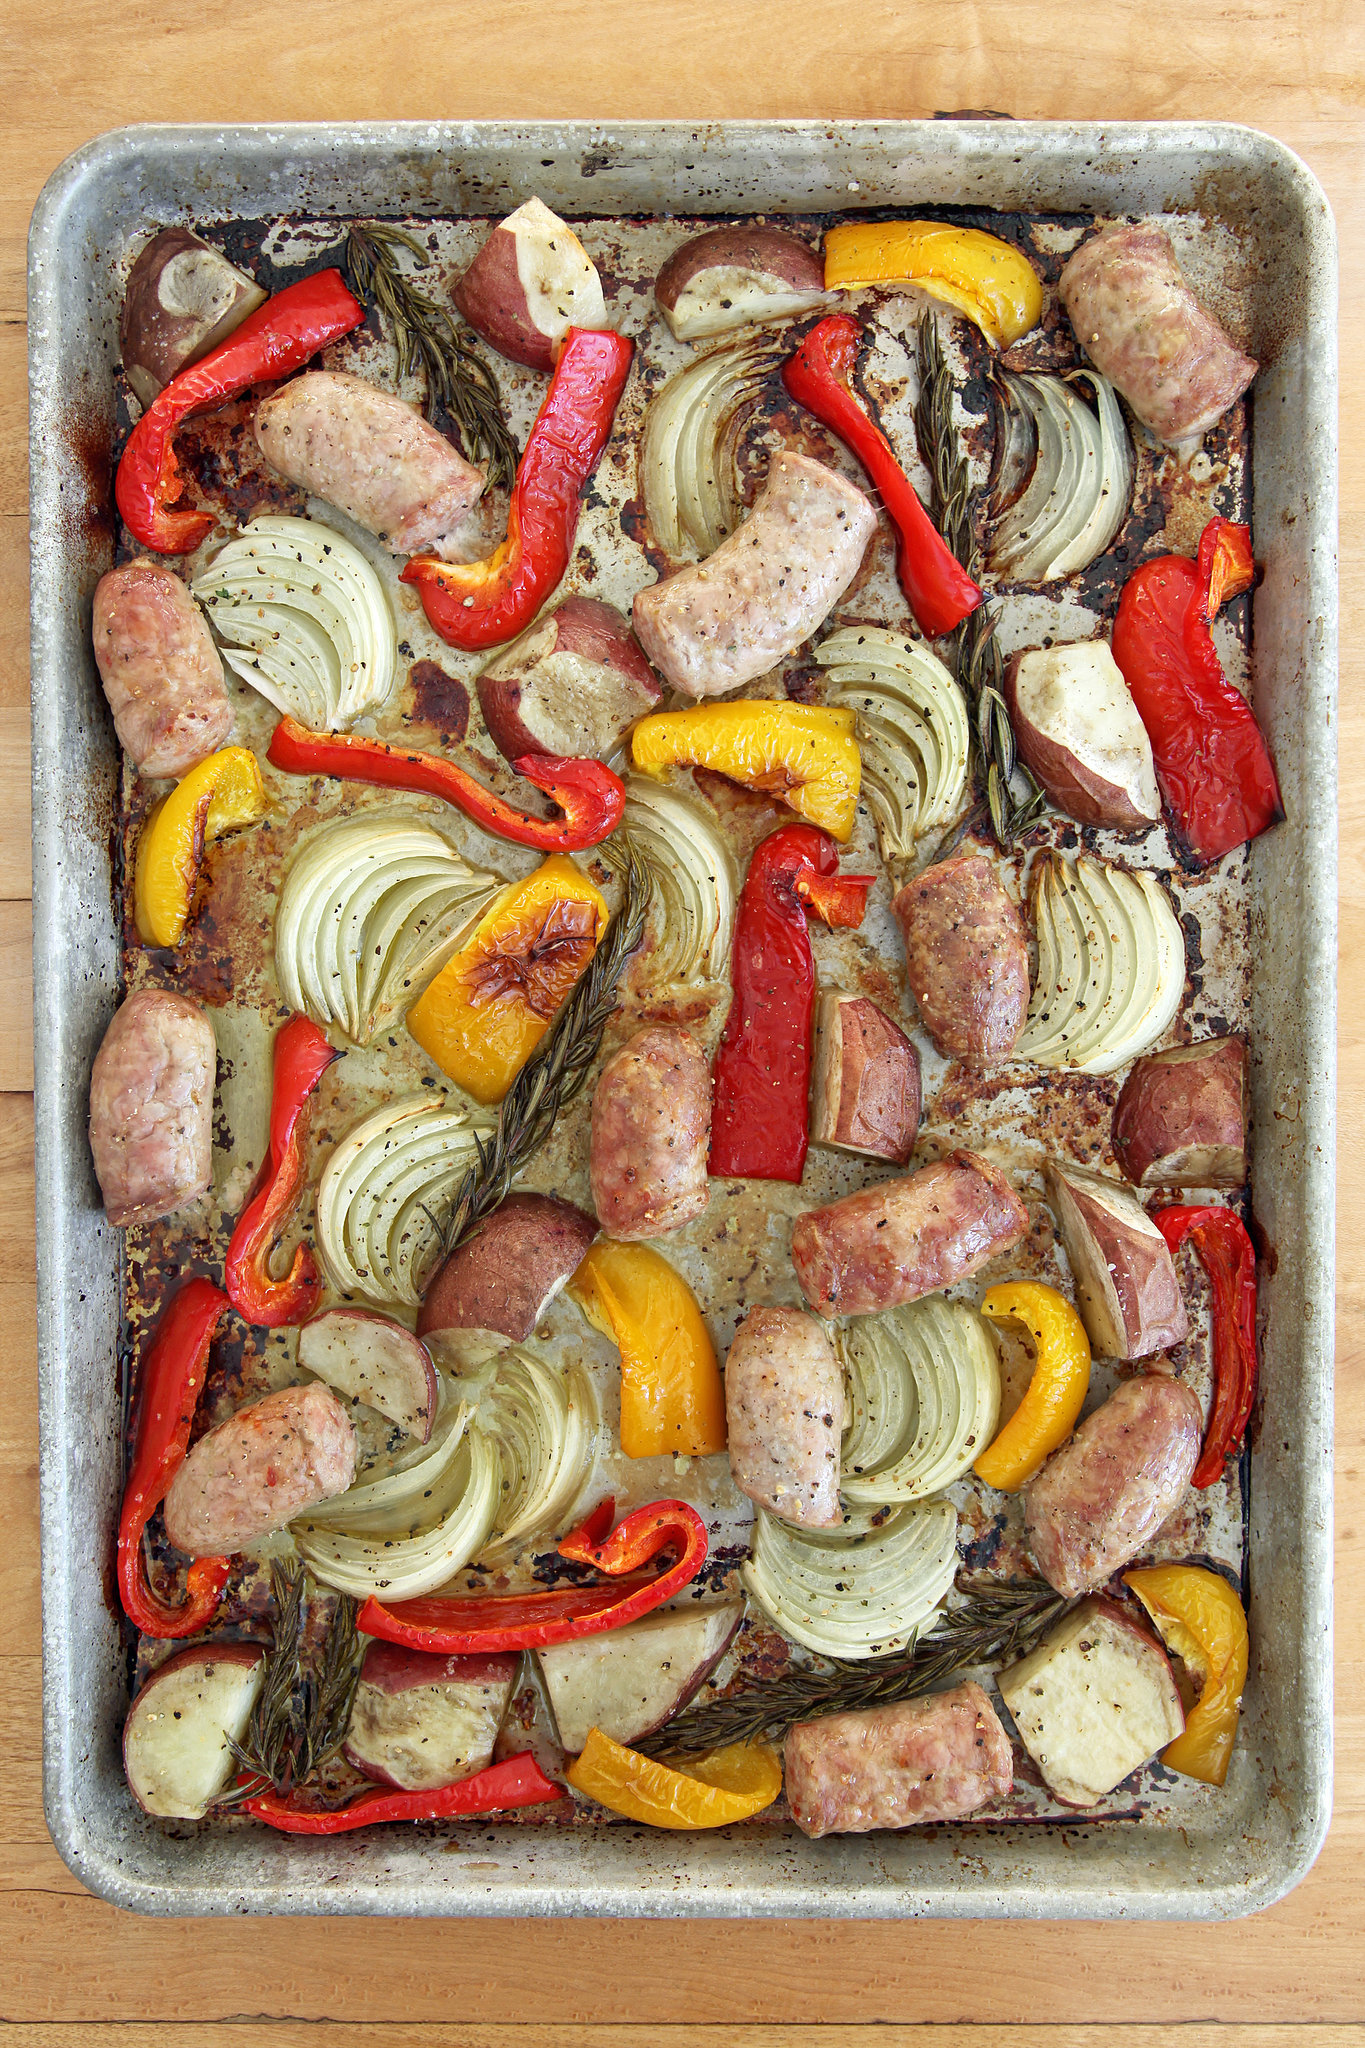 Sweet Peppers Popsugar Food Onions Prep Work All You Need To Do Is Stick Pan Oven After About Minutes Let Oven Work Its Sausages Getsnappy Roasted Italian Sausage nice food Sausage And Peppers In Oven